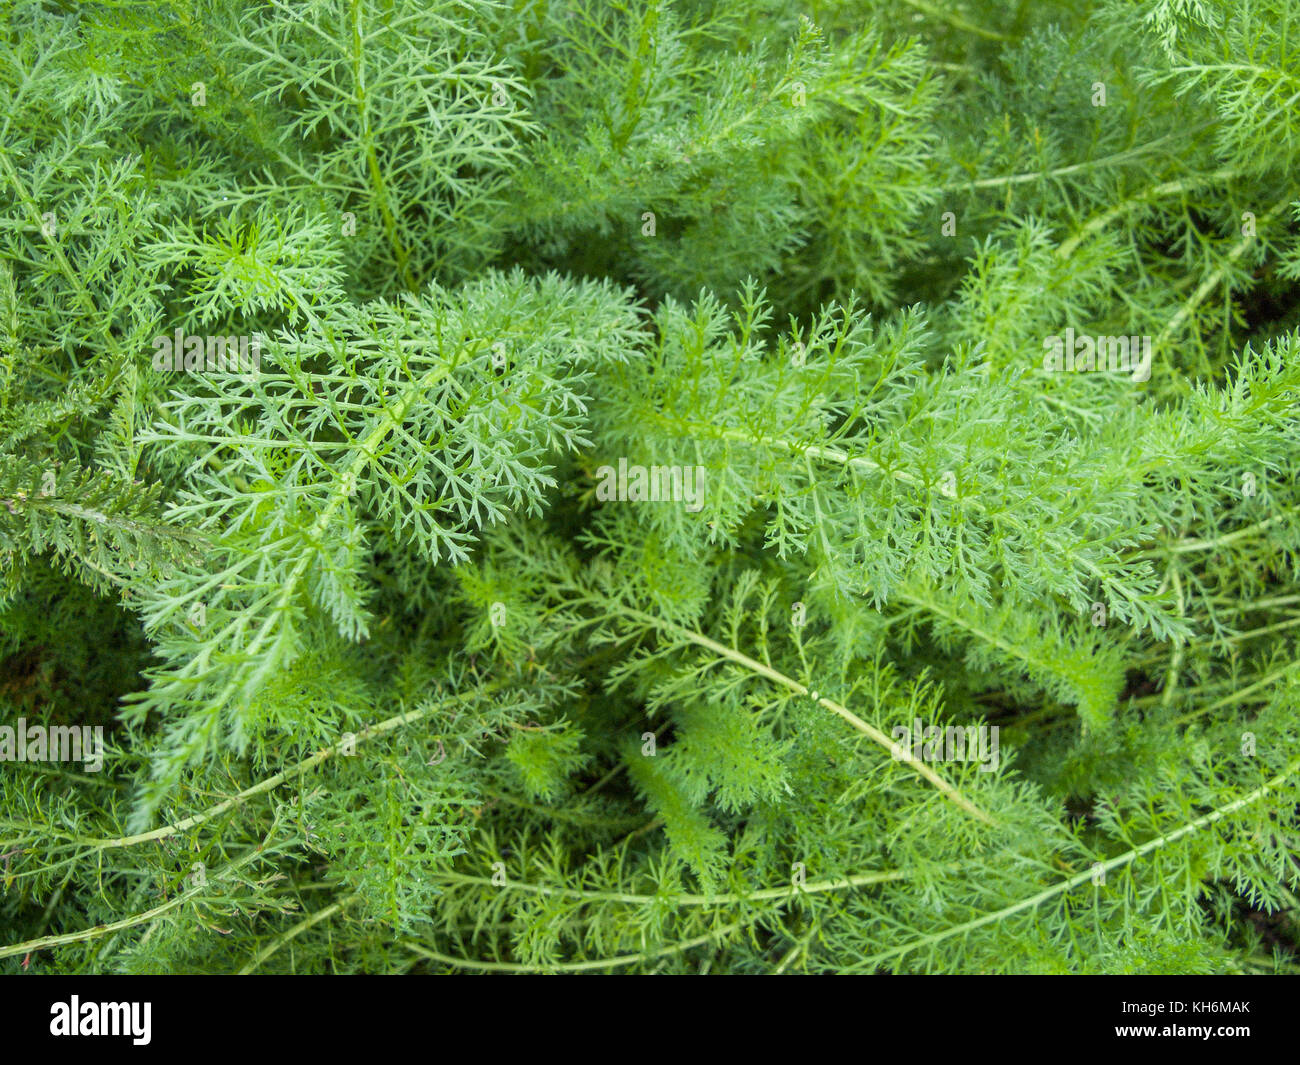 Frothy young foliage of the woundherb known as Yarrow (Achillea millefolium). - Stock Image